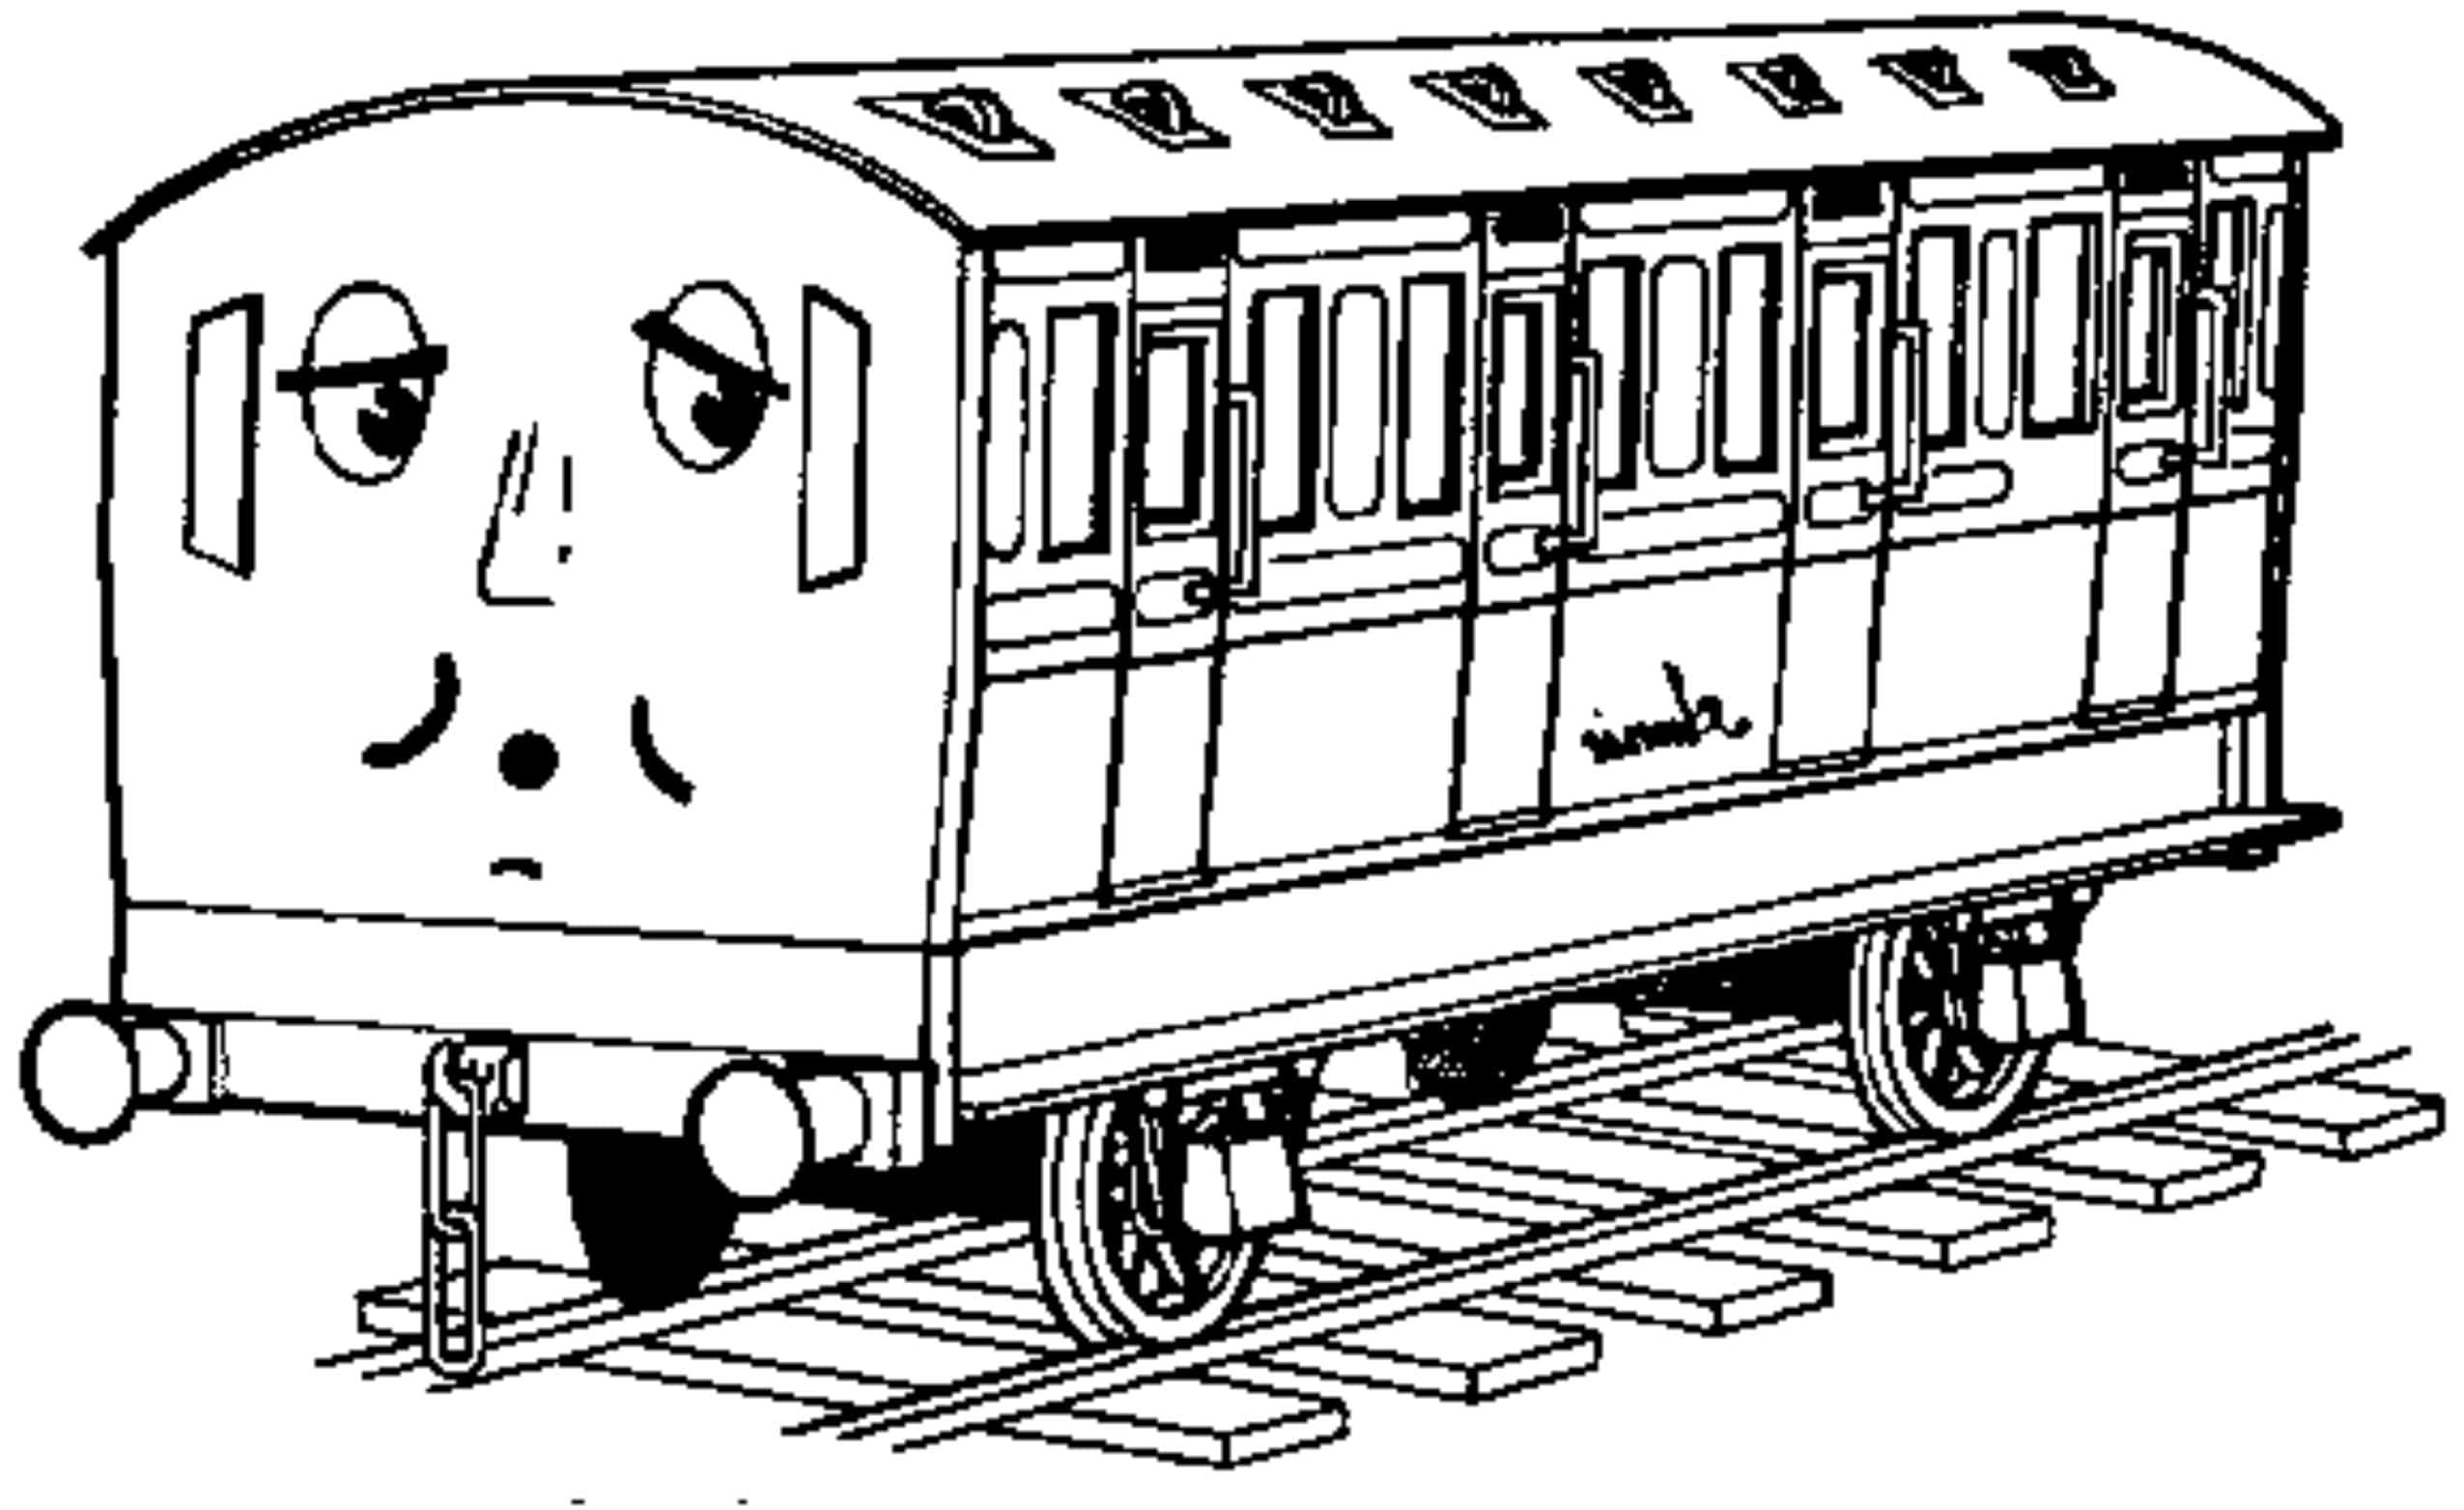 thomas and friends coloring pages thomas and friends coloring pages coloring pages to and pages coloring friends thomas